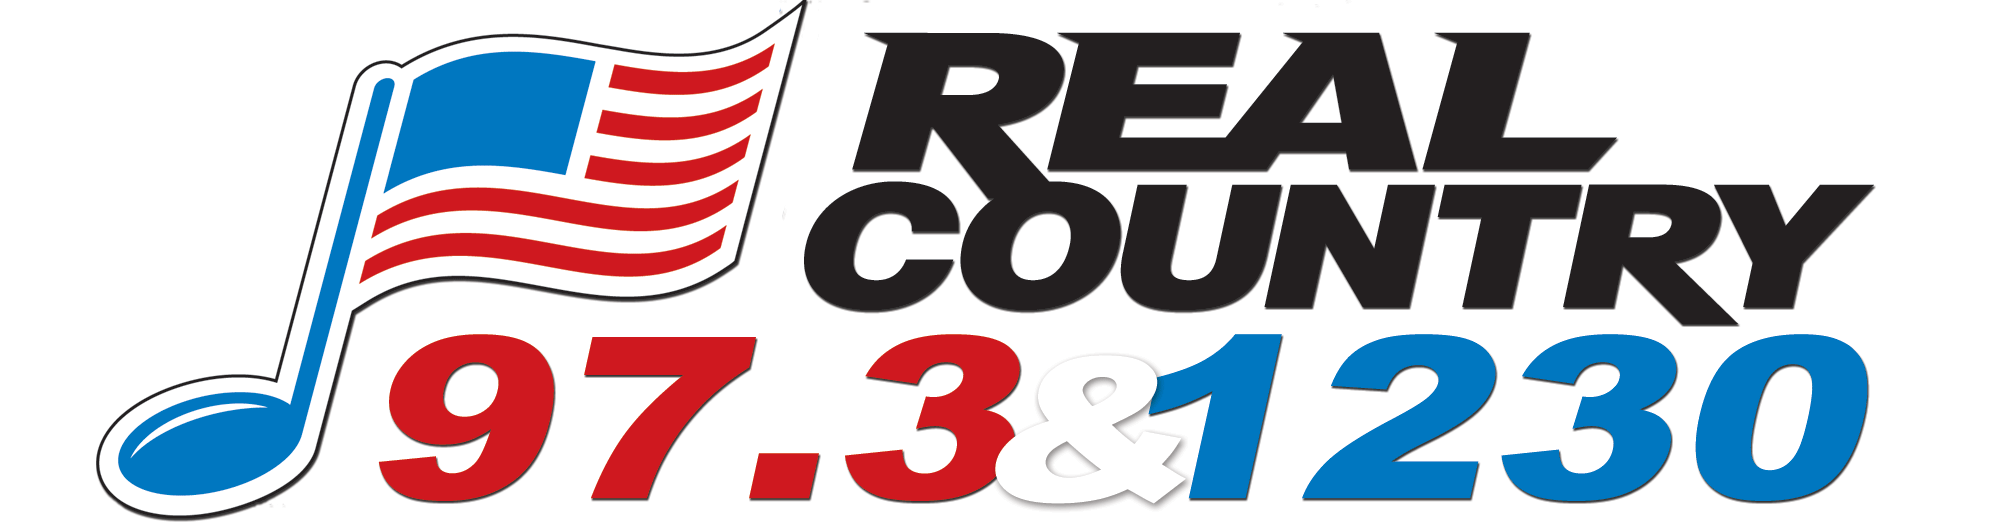 Real Country 1230 WHCO